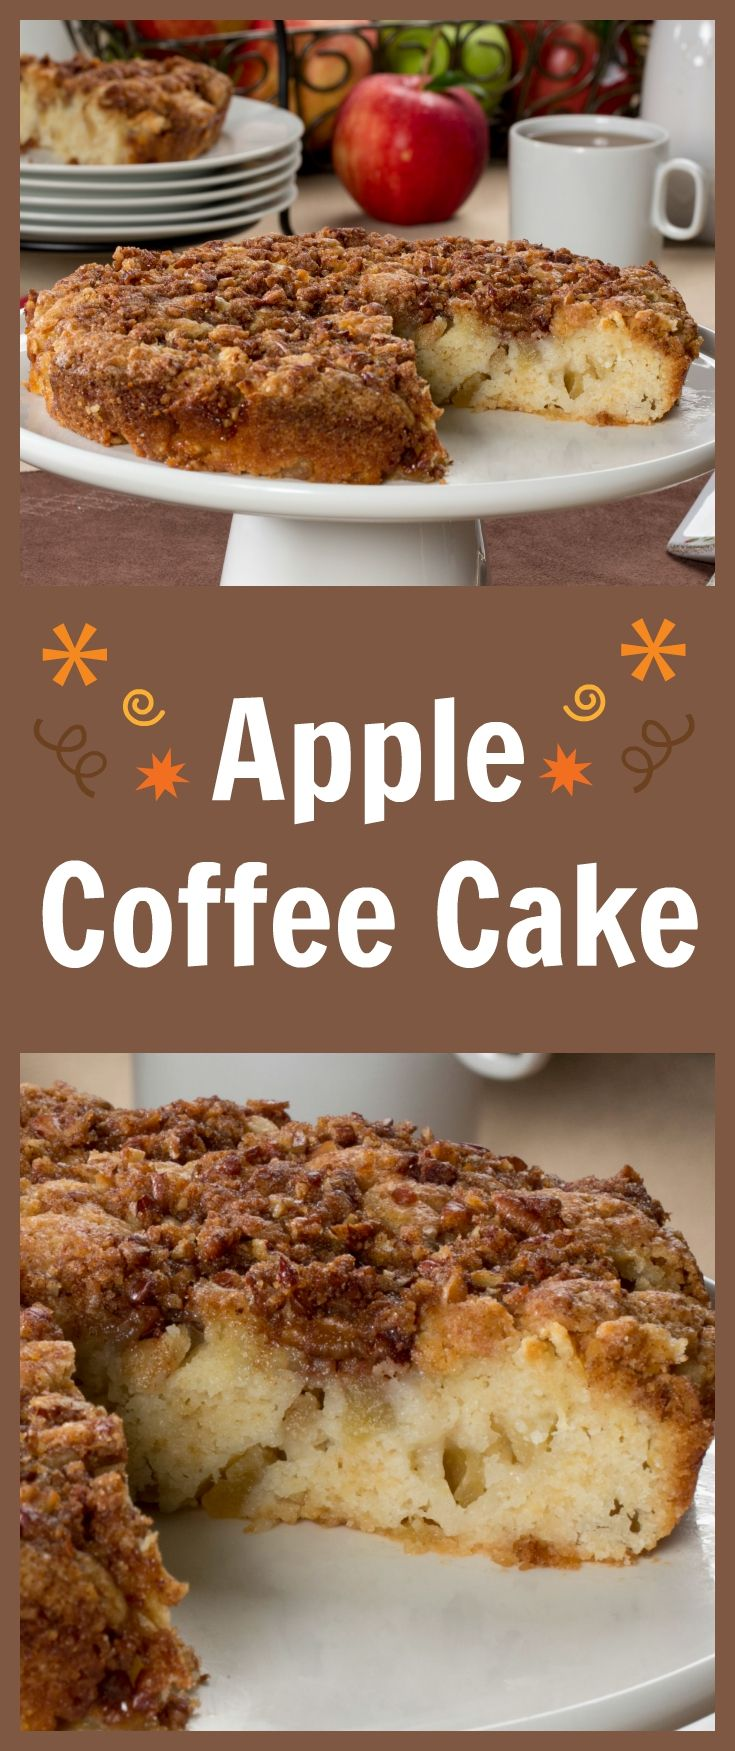 Celebrate apple season with a homestyle Apple Coffee Cake that simply shouts comfort. Imagine taking this coffee cake warm out of the oven, and serving it with a scoop of ice cream, or enjoying it as a morning treat. Talk about the perfect autumn recipe!